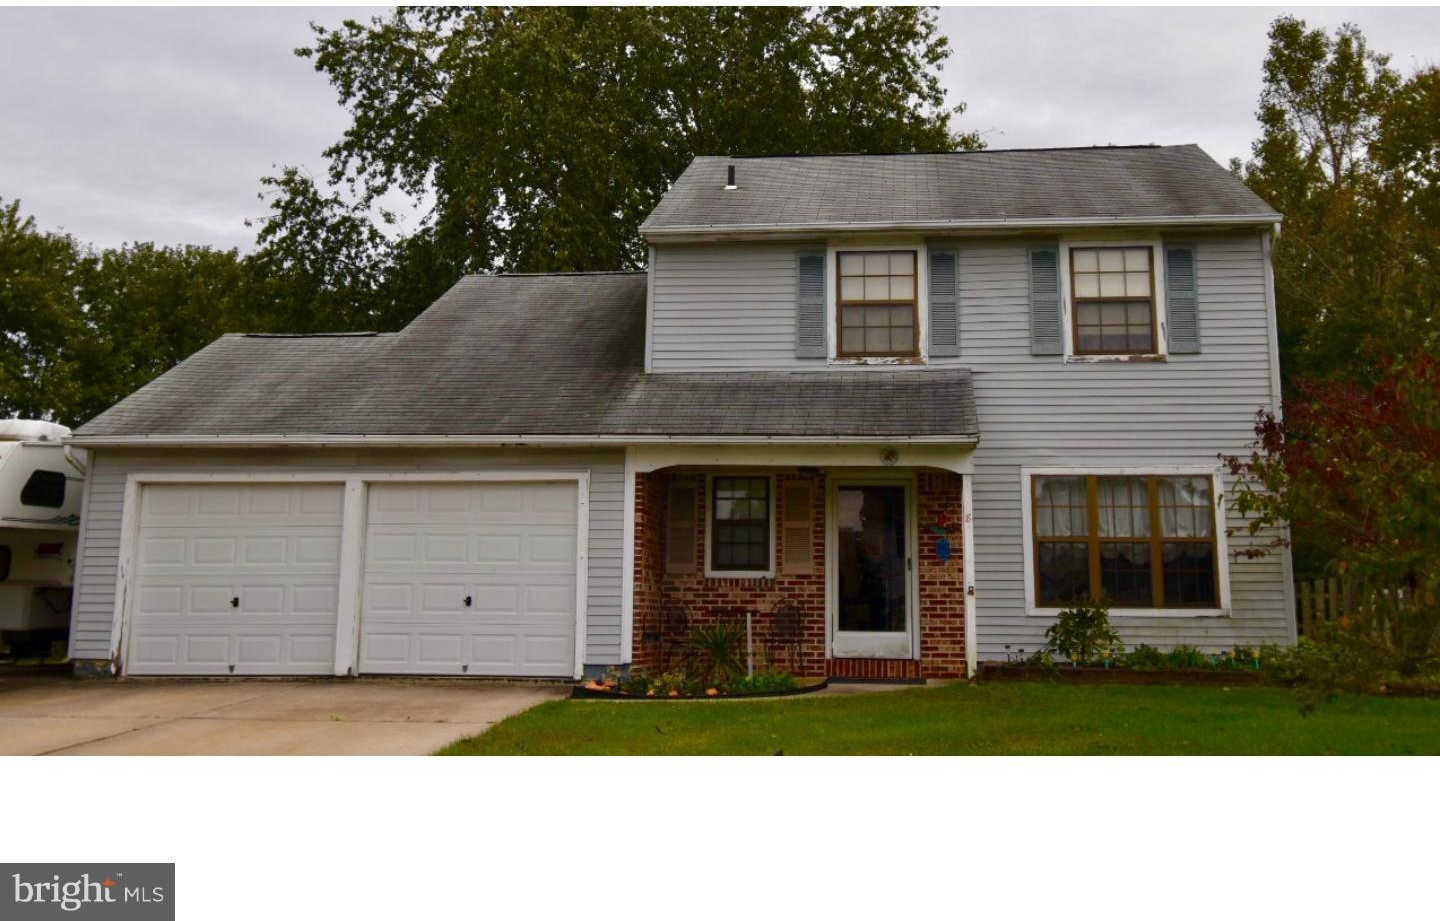 8 Woodcrest Drive, Mount Holly, NJ 08060 now has a new price of $210,000!